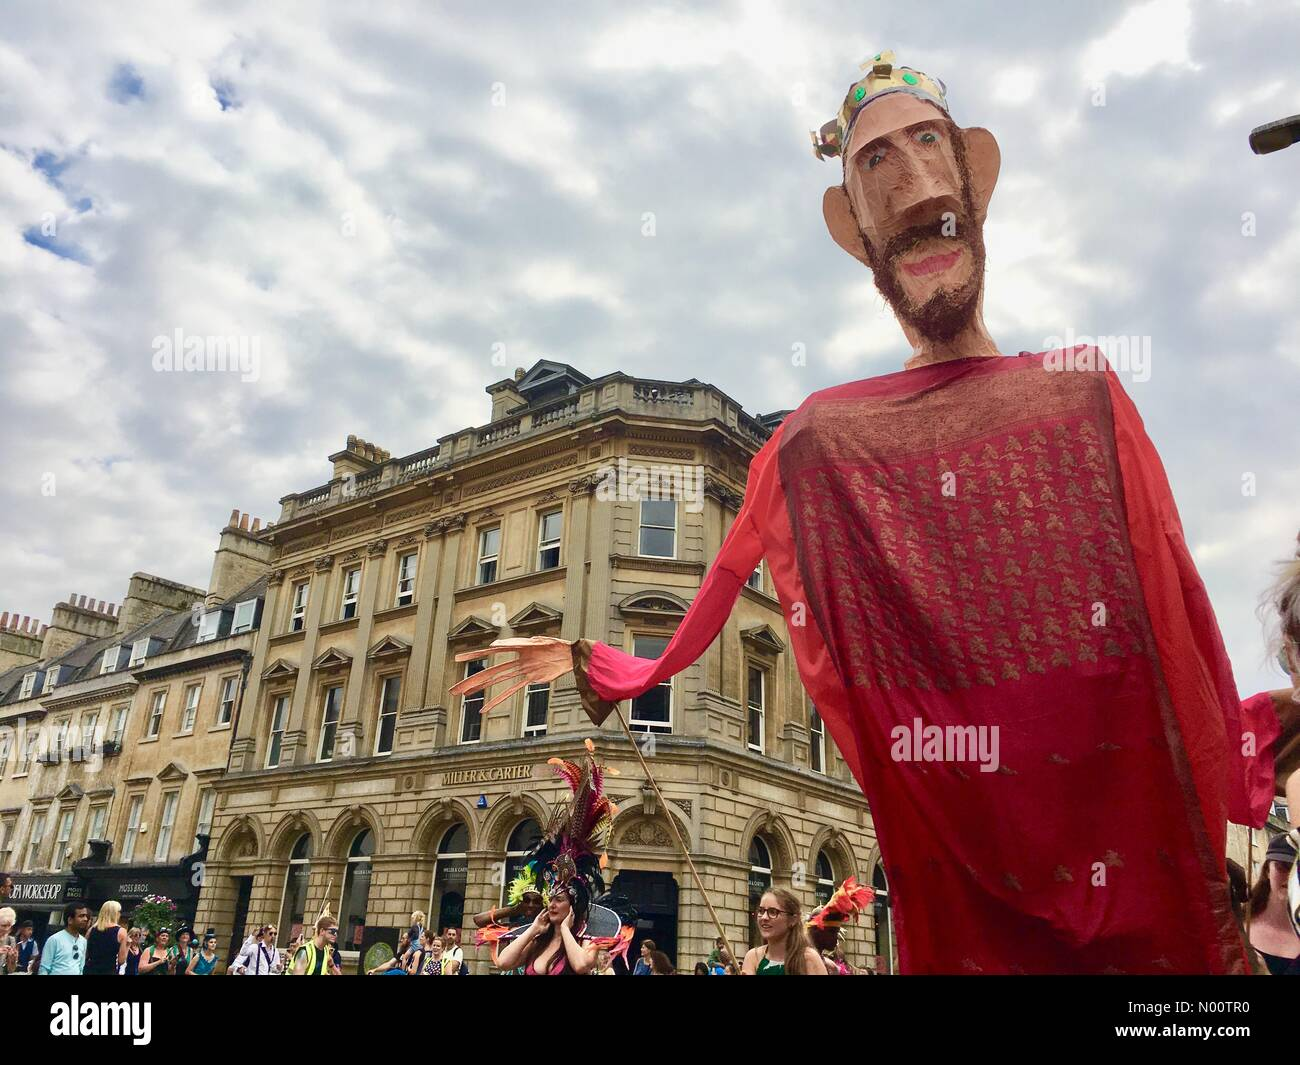 bath-carnival-21-july-2018-bath-england-